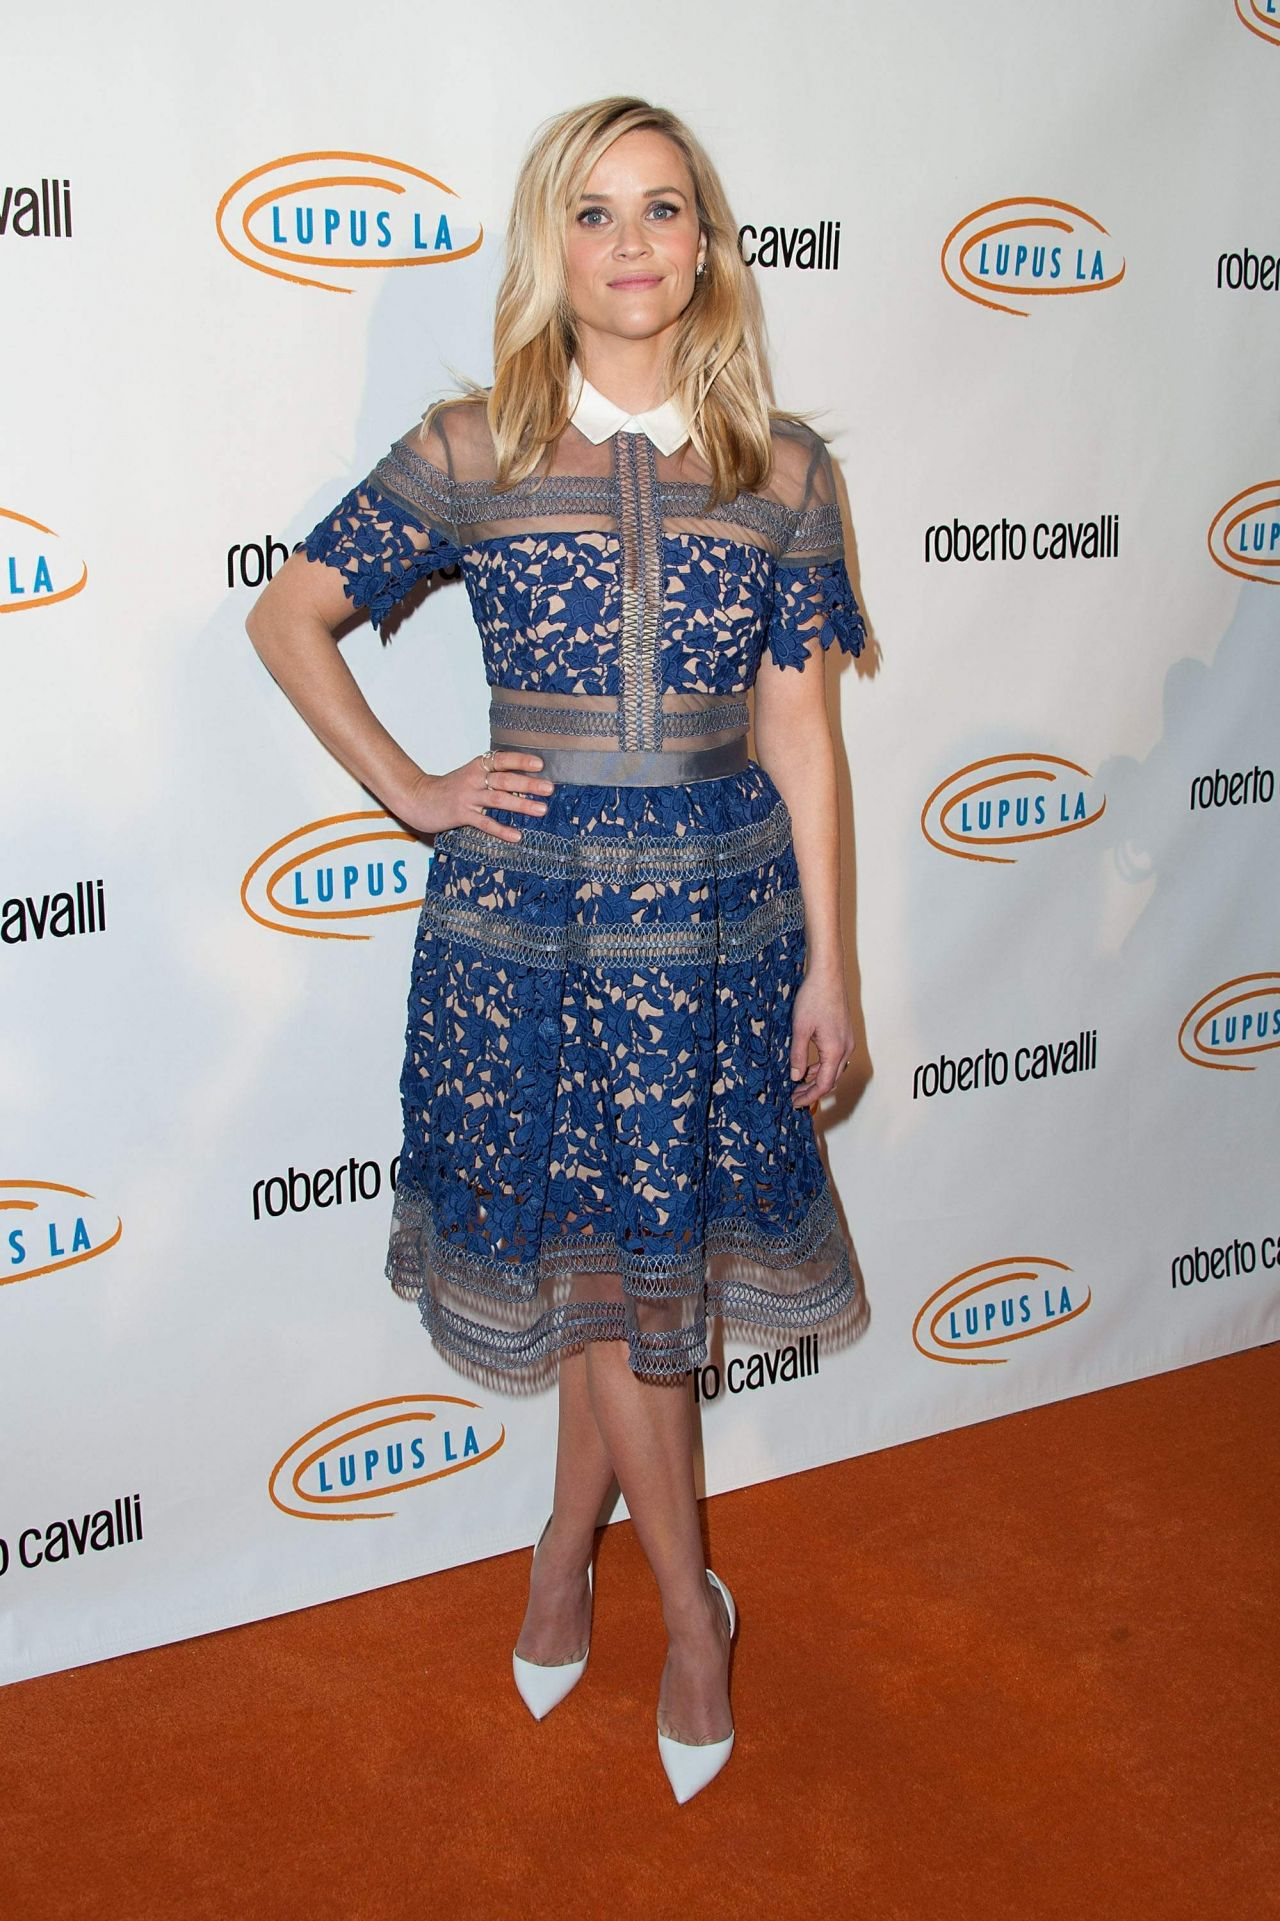 reese-witherspoon-2014-lupus-la-hollywood-bag-ladies-luncheon_5